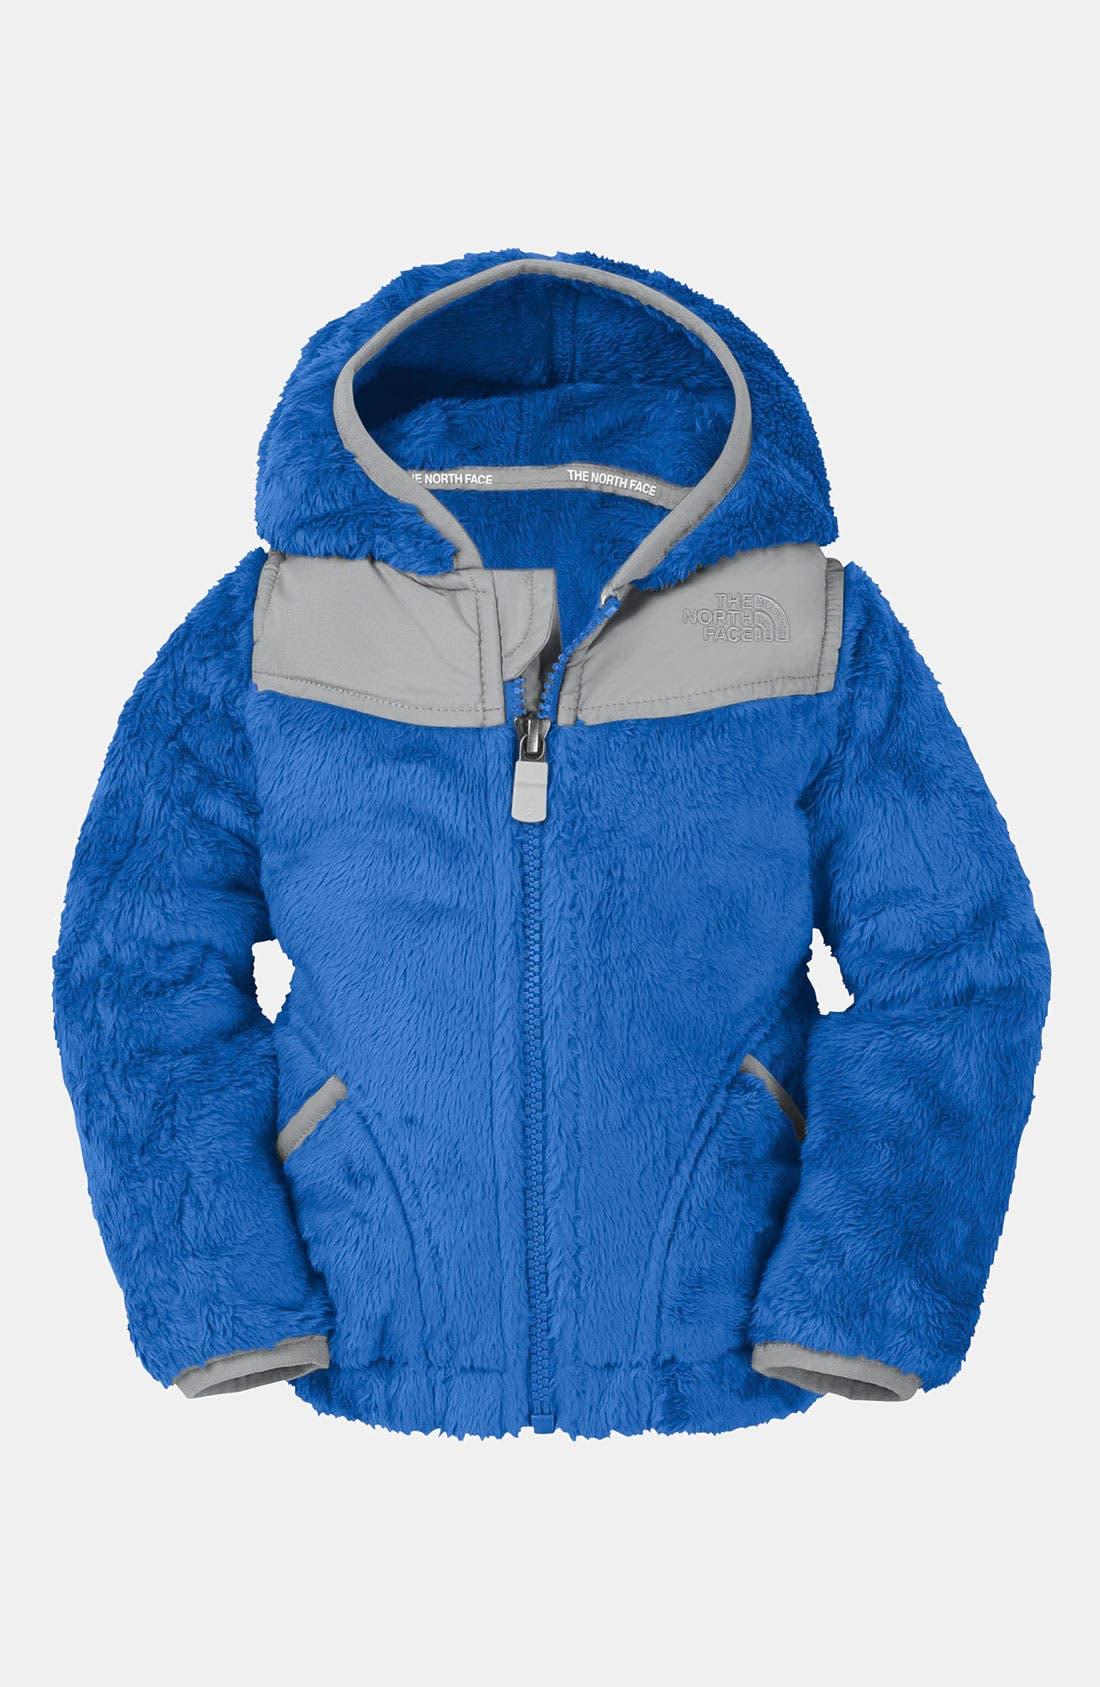 Alternate Image 1 Selected - The North Face 'Oso' Hoodie (Baby)